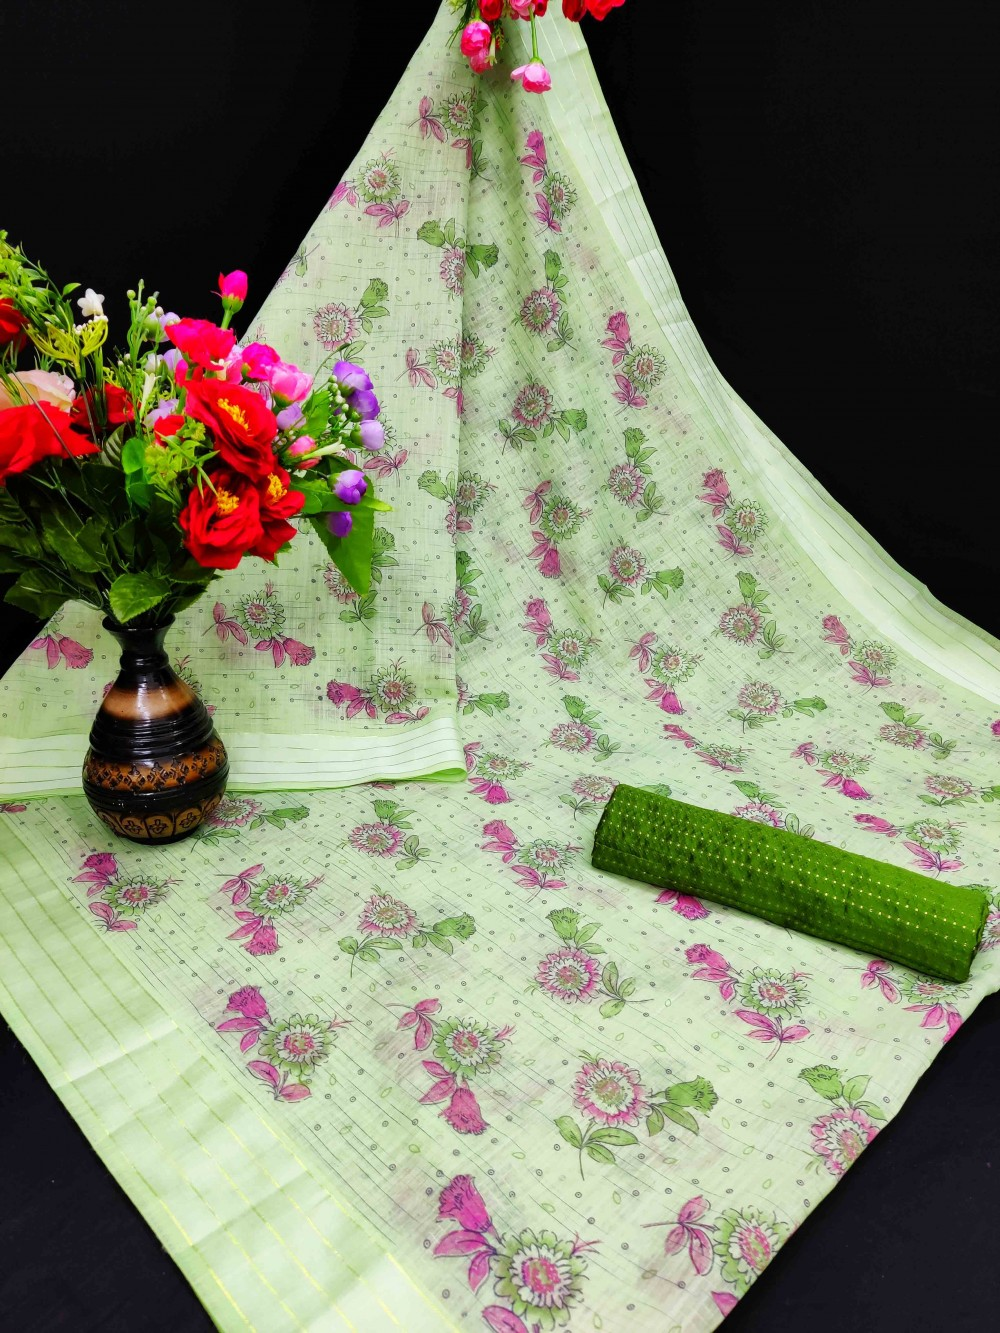 Trendy Store Women s Striped pattern Cotton sari with floral print work  with Contrast color Jacqaurd blouse